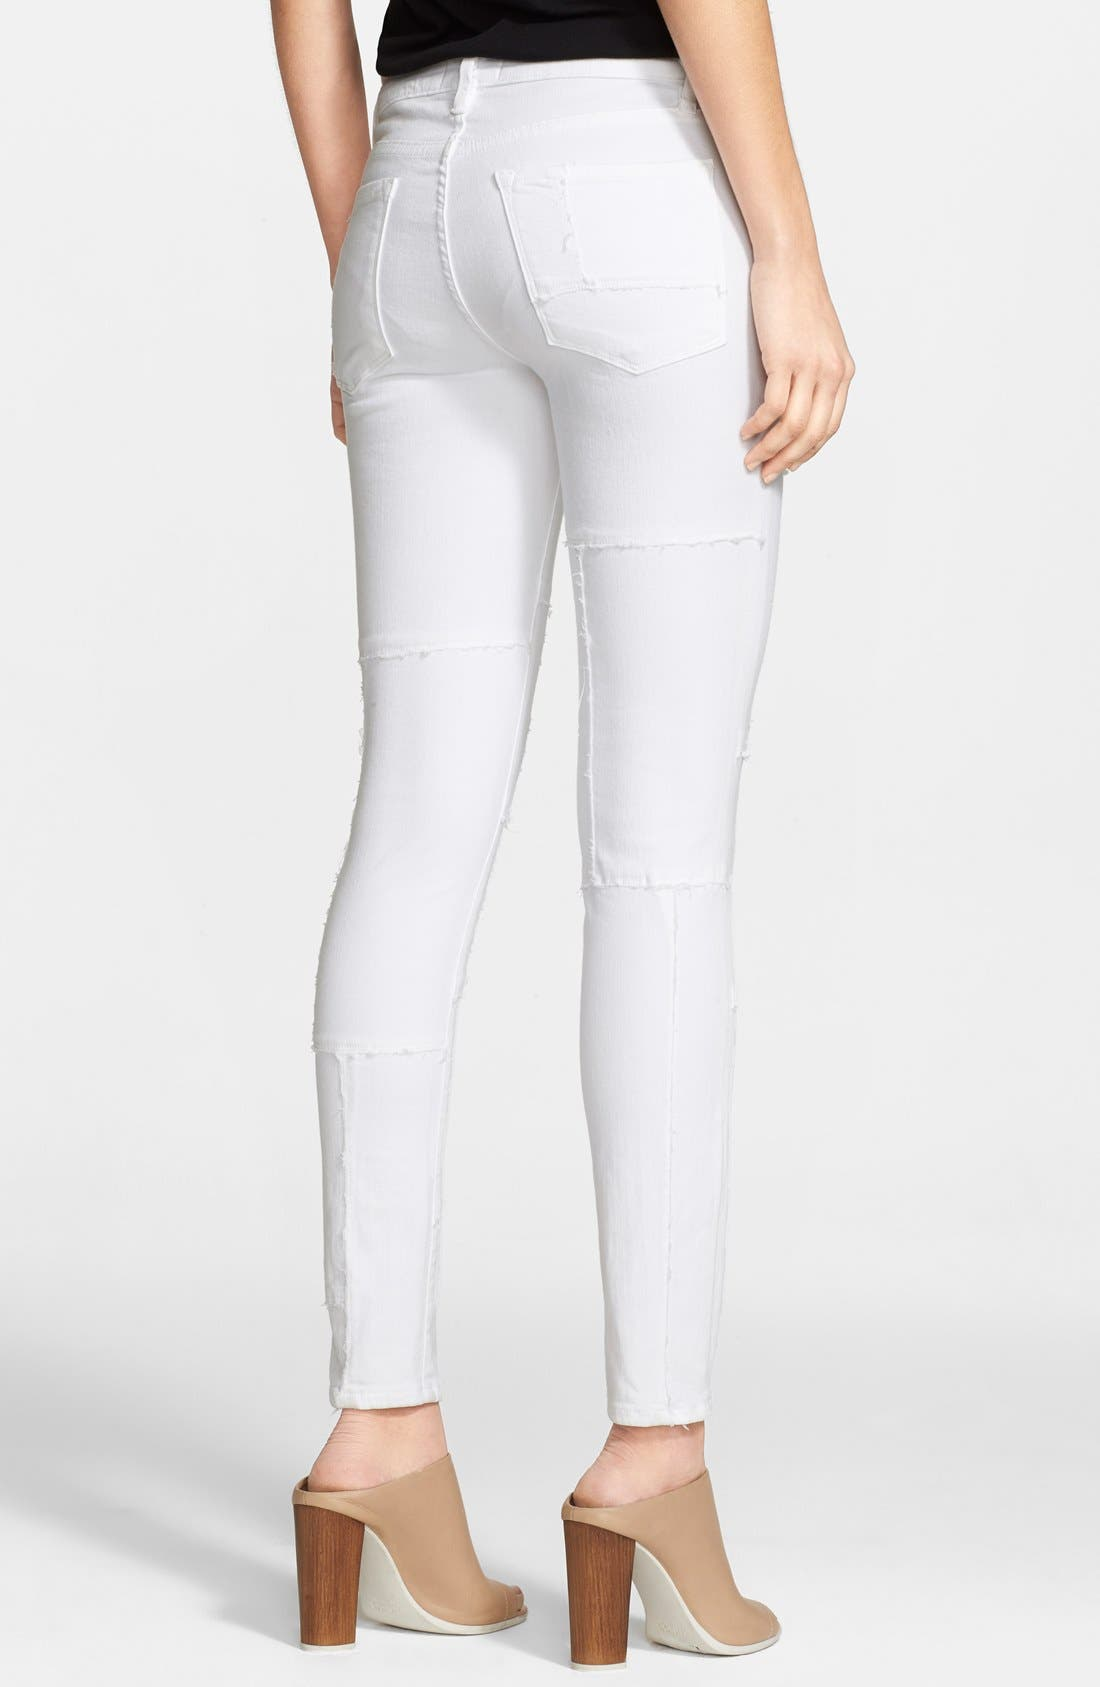 Alternate Image 2  - Frame Denim 'Le Skinny Panel' Skinny Jeans (Blanc)